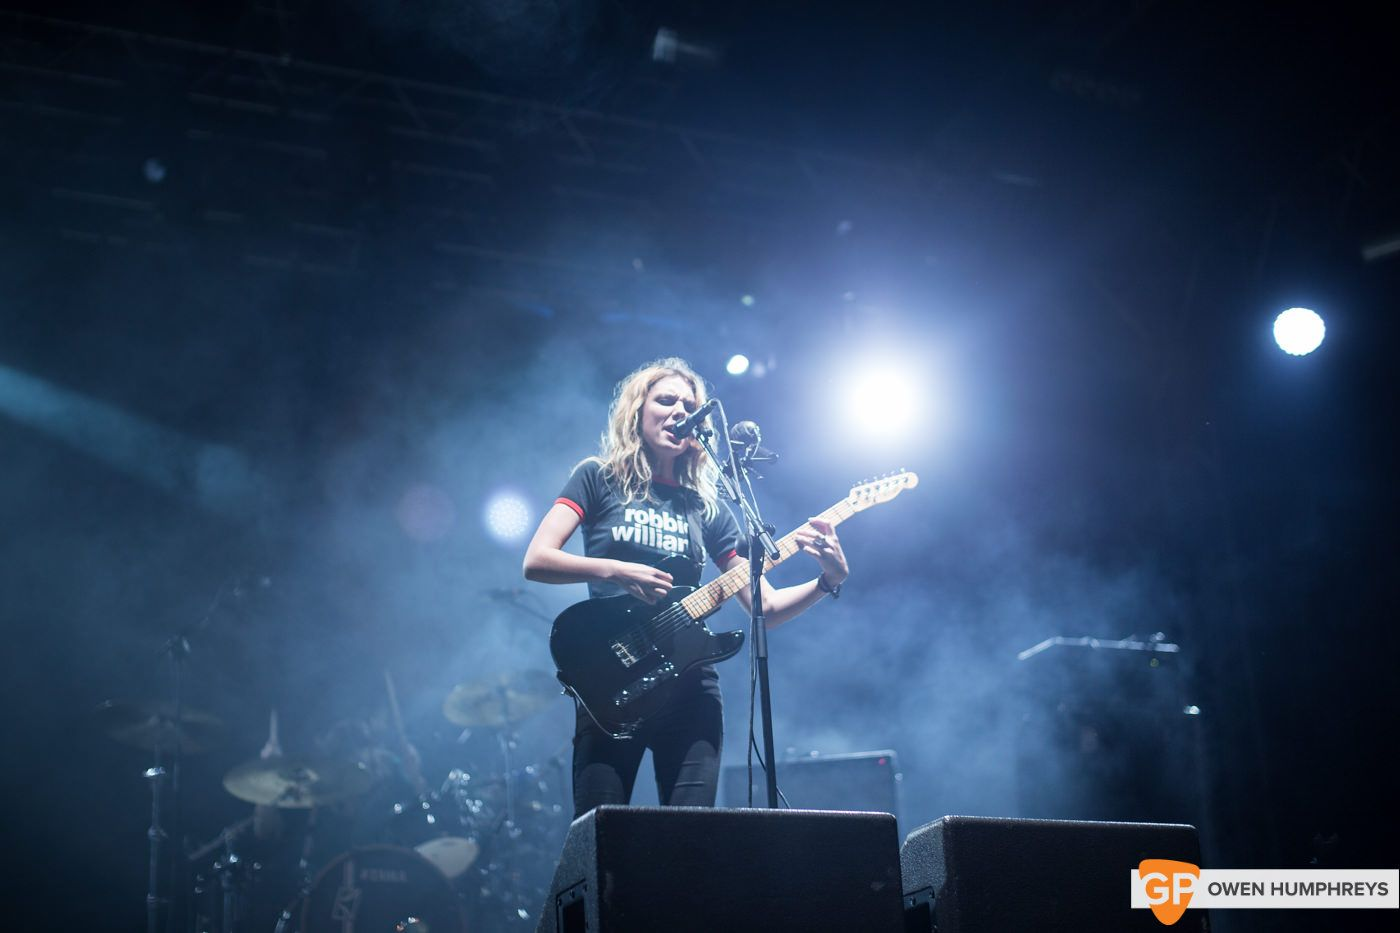 Wolf Alice at Electric Picnic by Owen Humphreys